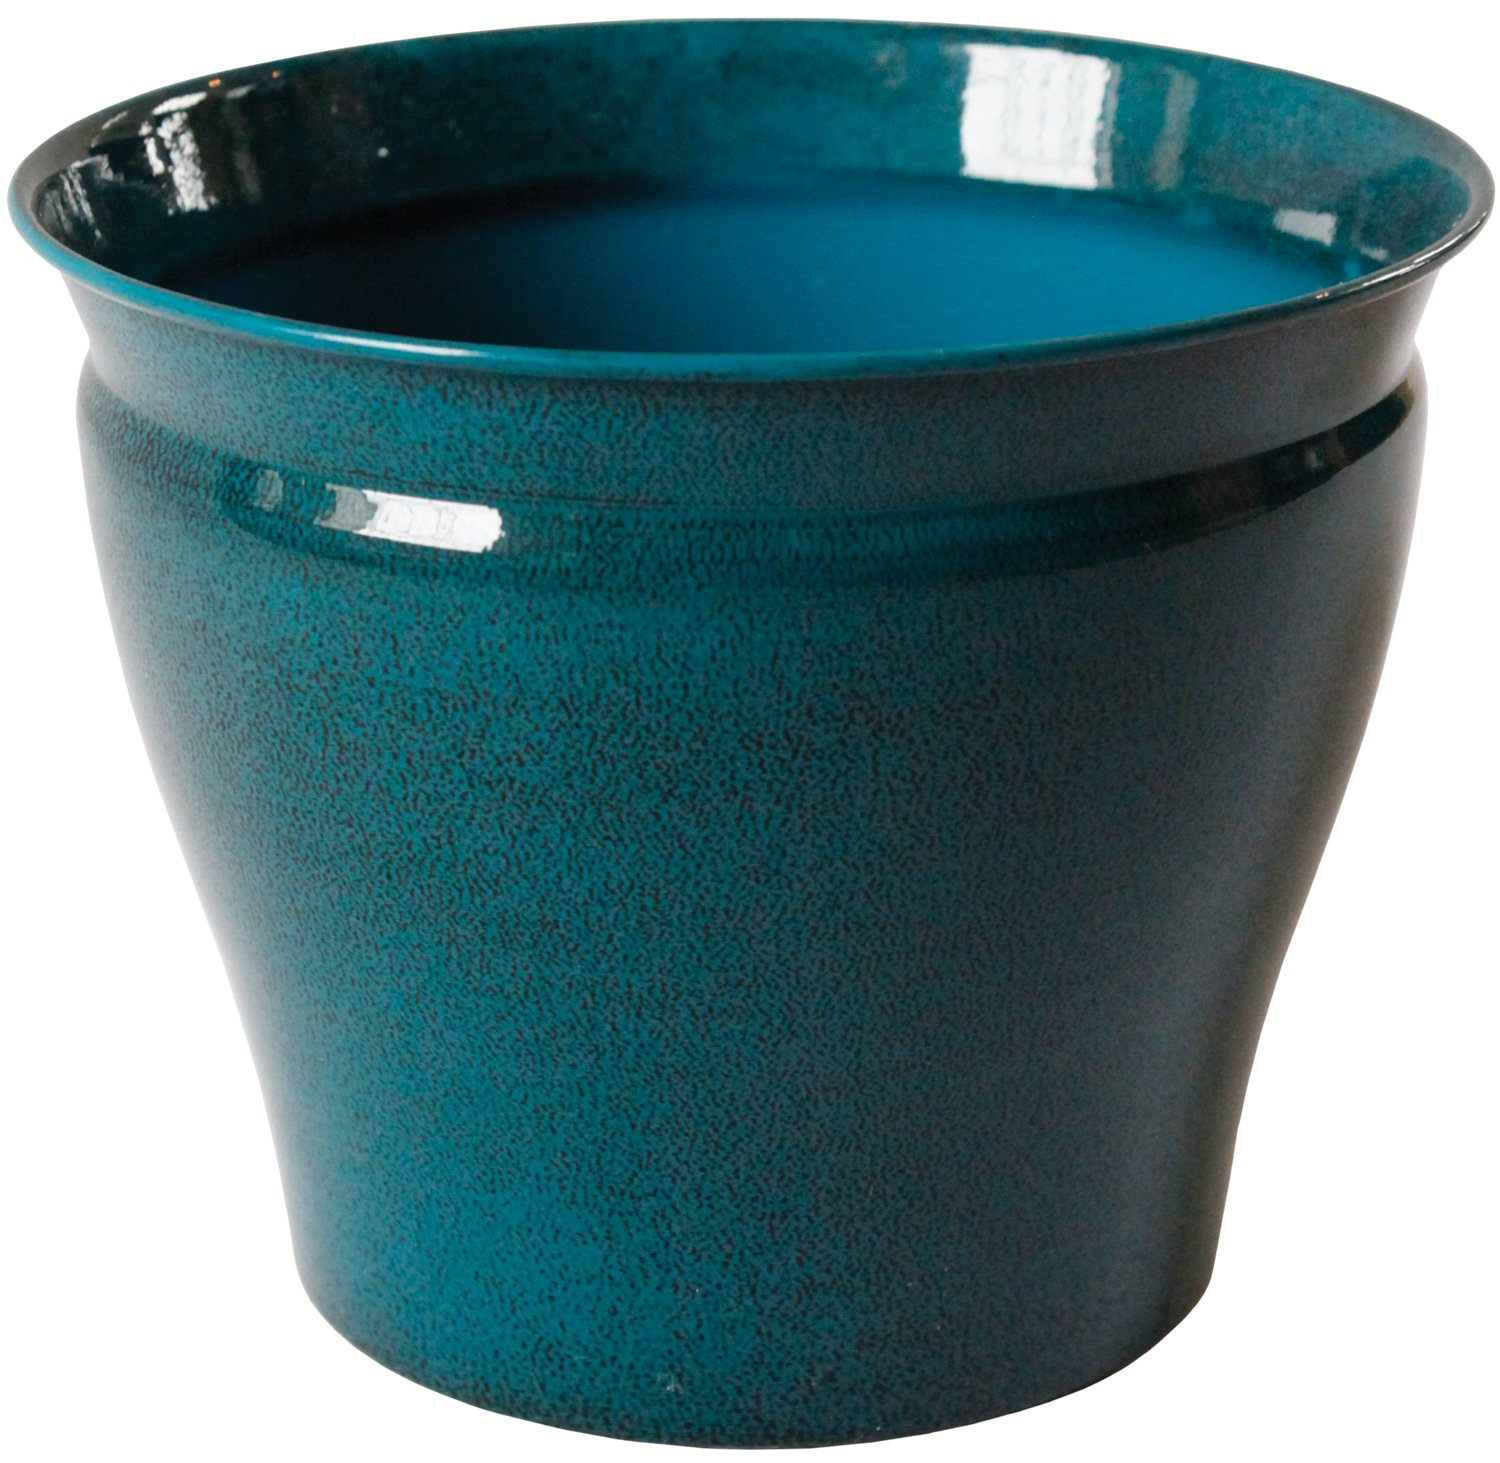 Robert Allen MPT01601 Avery Classic IronStone Metal Planter Flower Pot, 10'', Bold Mountain Waves Color